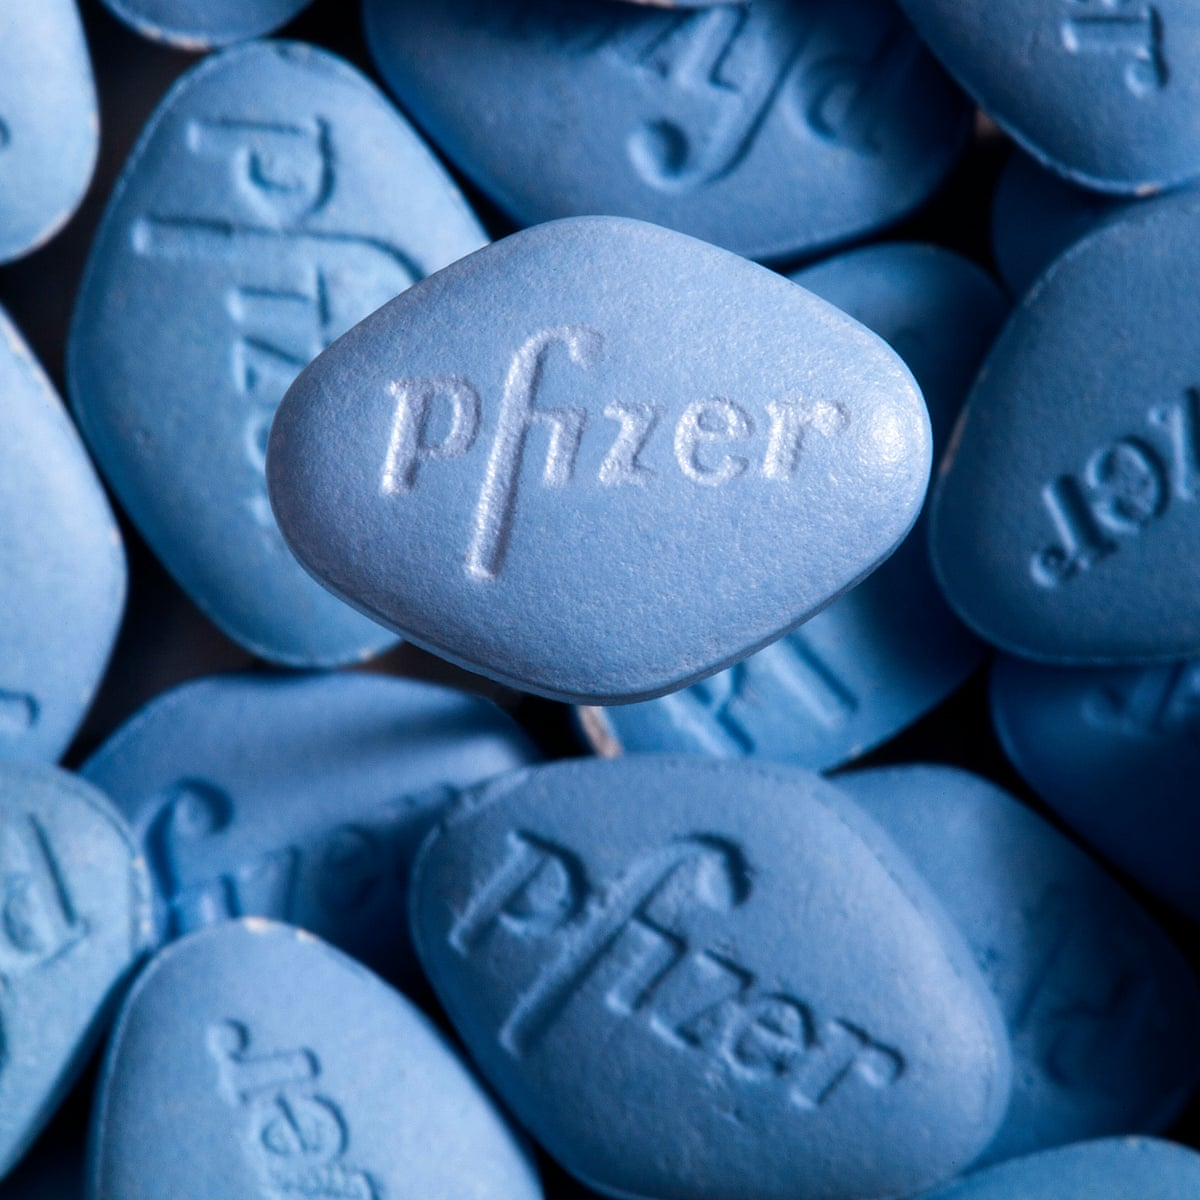 Viagra: the little blue pill that revolutionised our sex lives | Viagra | The Guardian